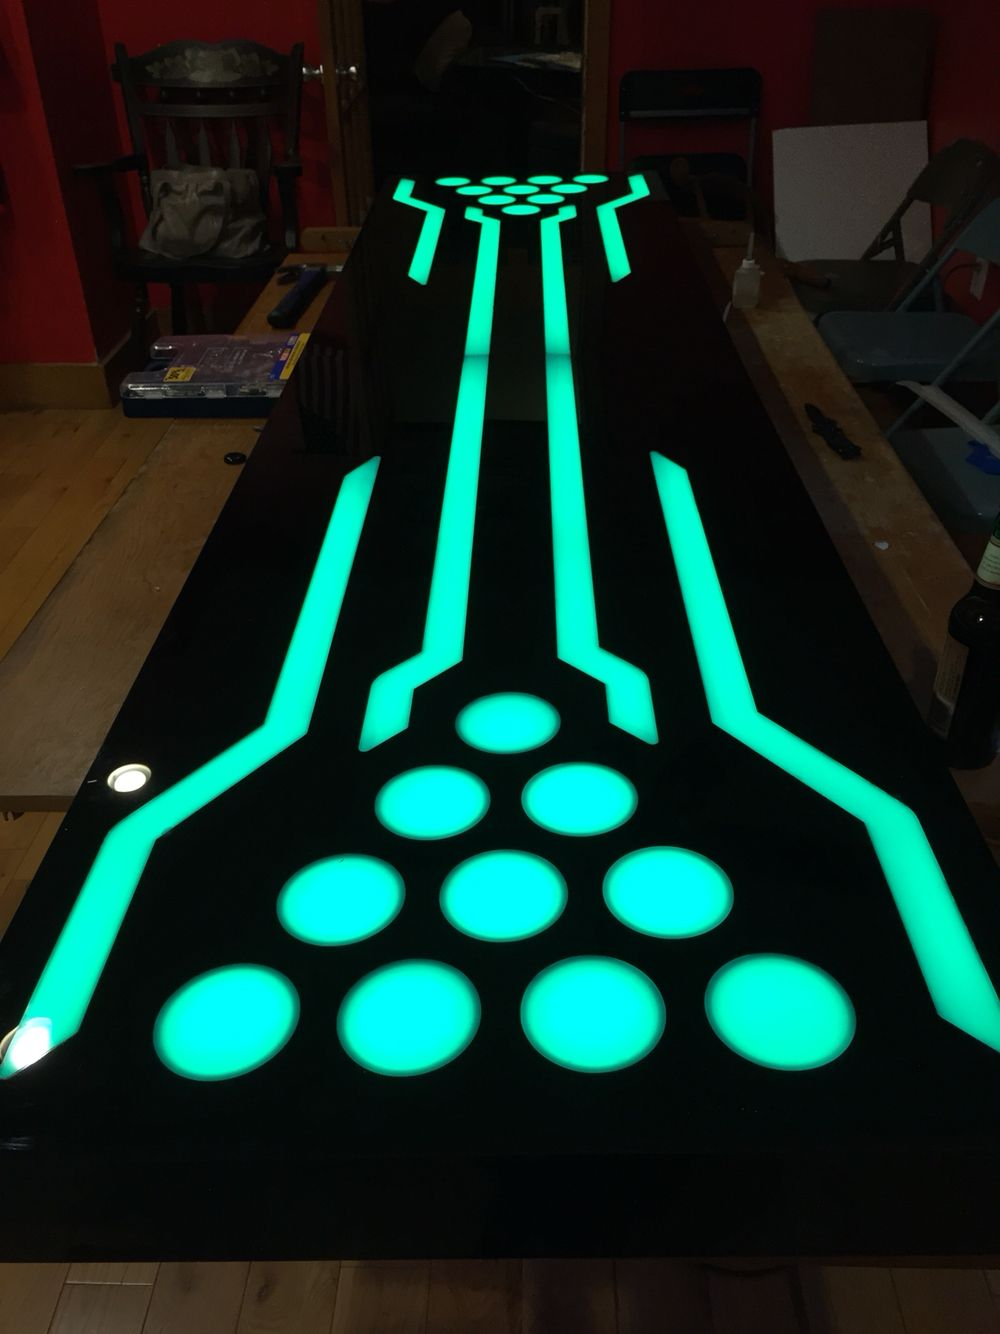 Acrylic Beer Pong Table Now Available For Purchase